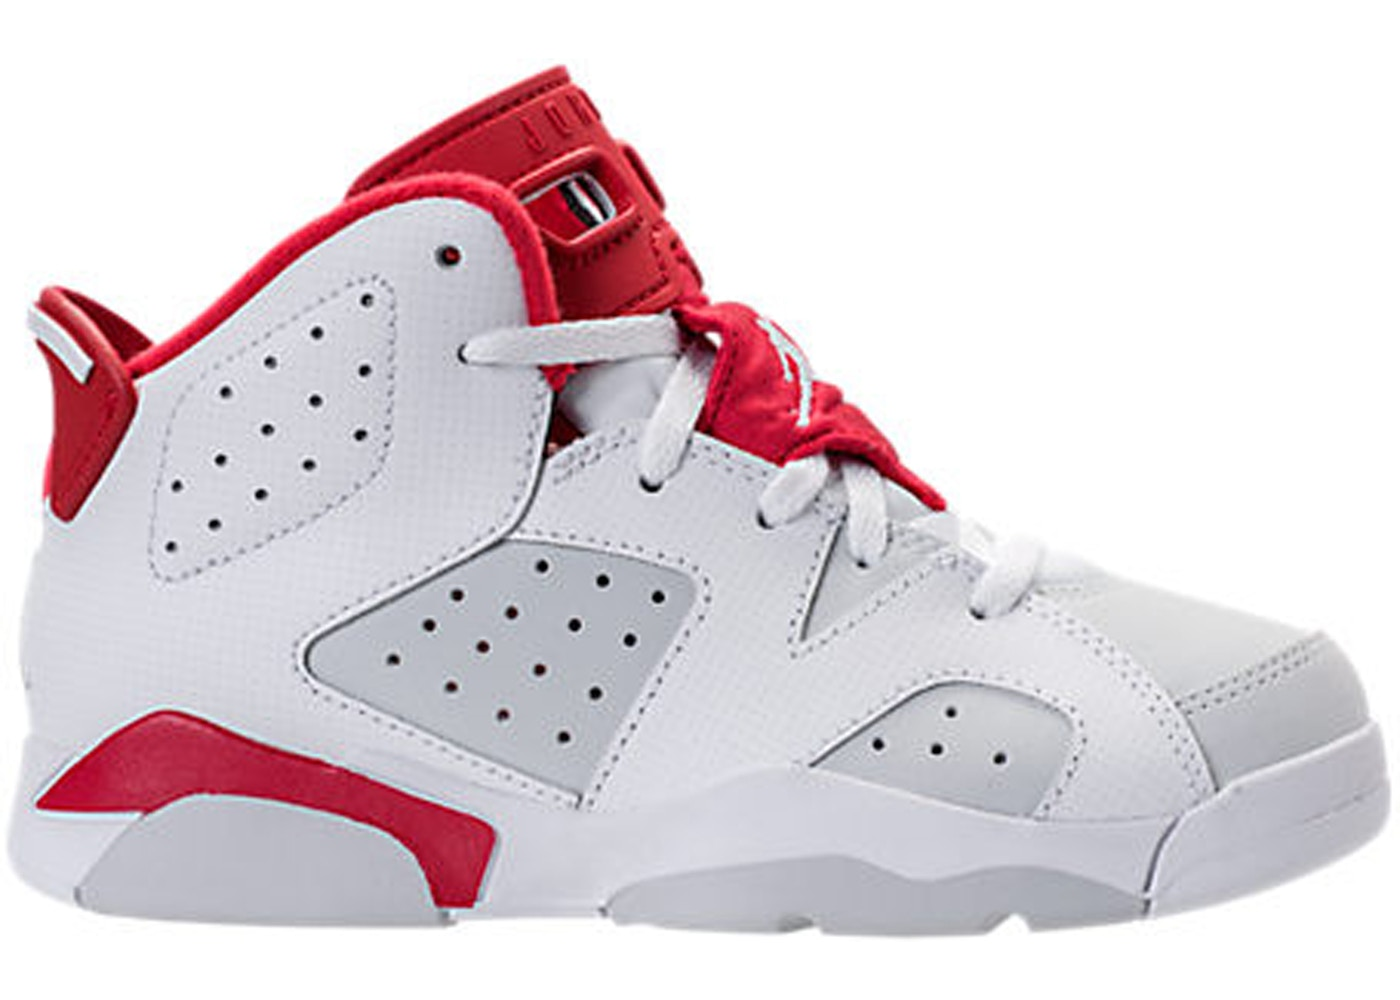 713f2bce9a0ee5 Jordan 6 Retro Alternate Hare (PS) - 384666-113